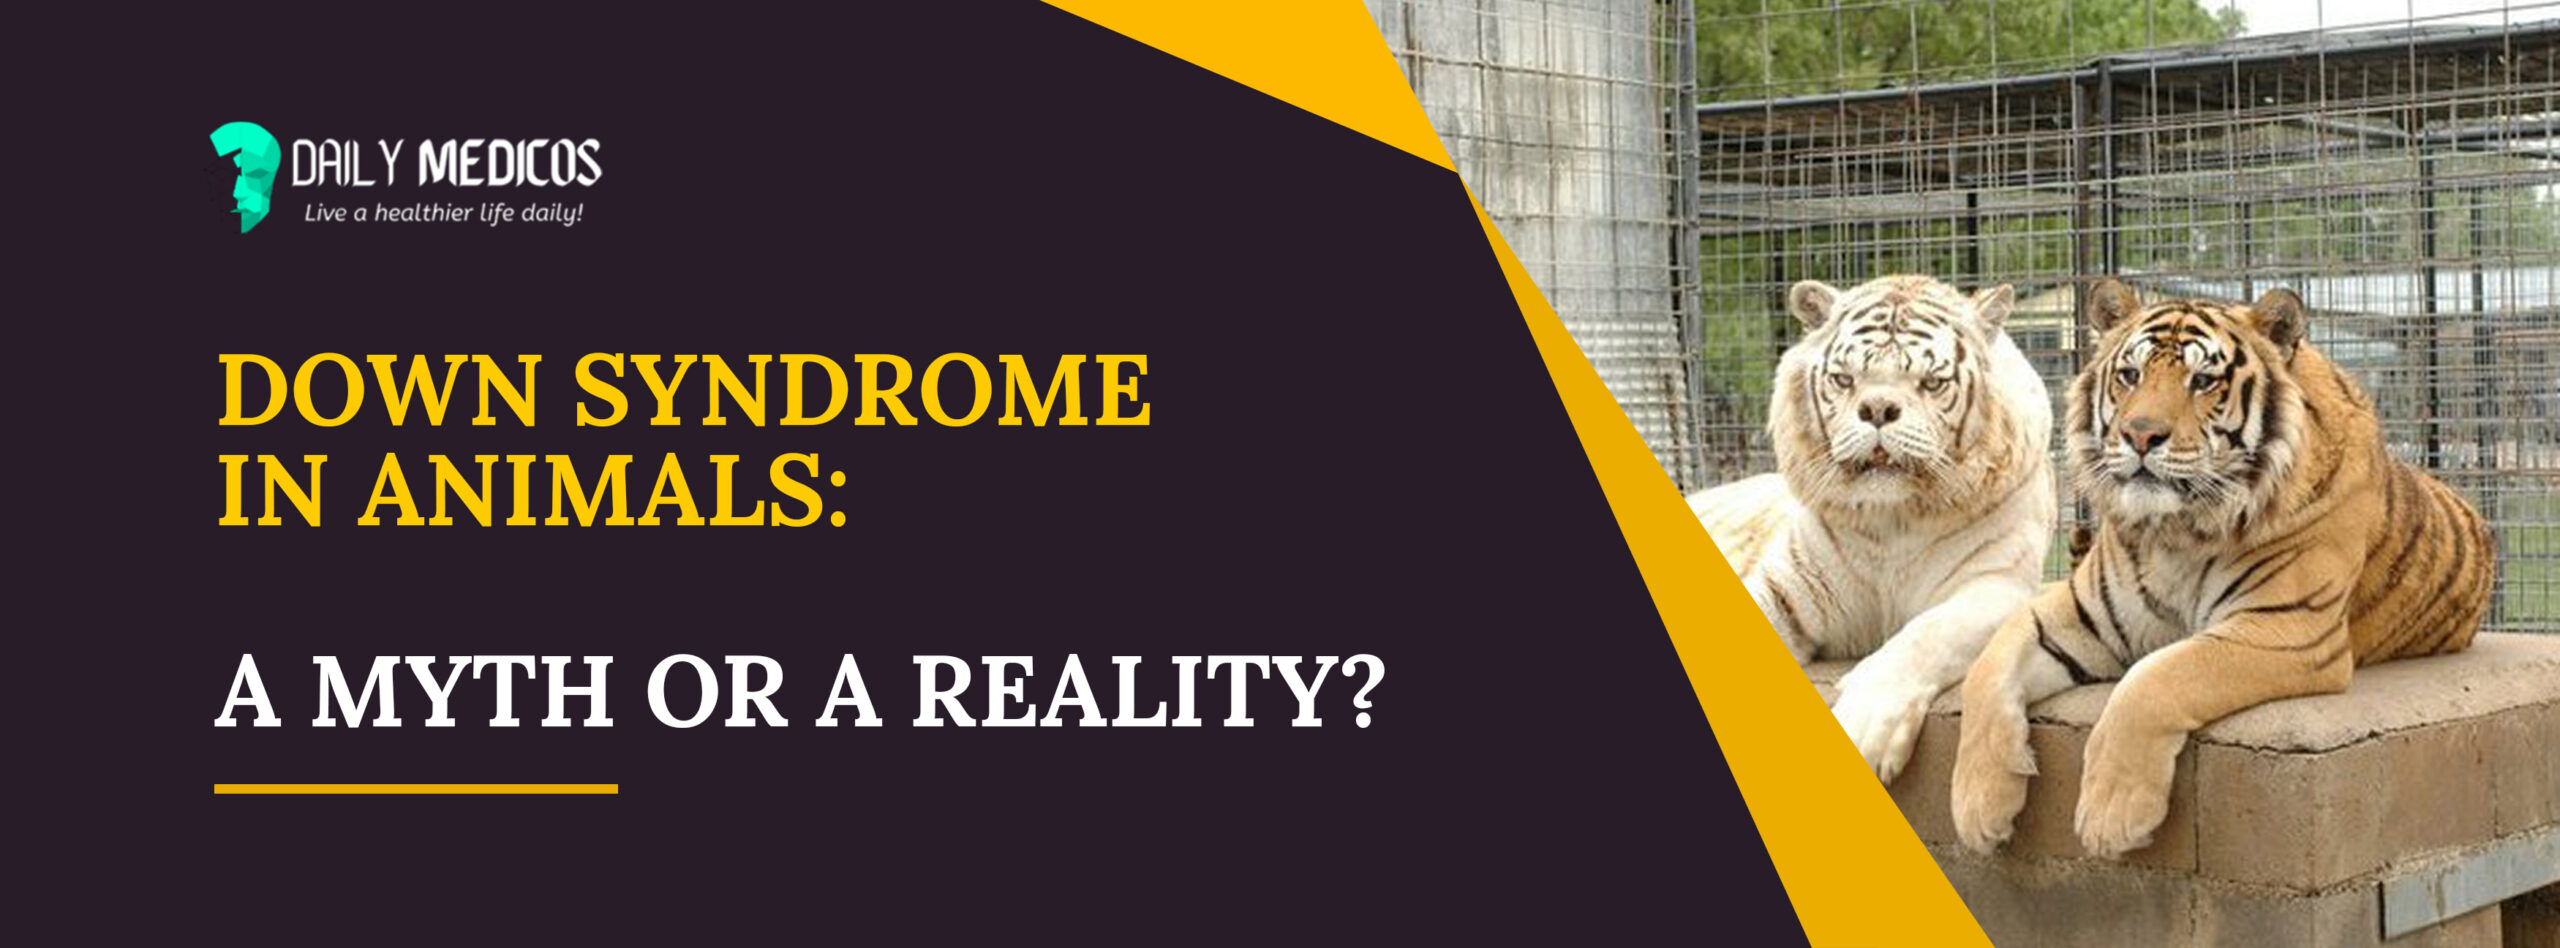 Down Syndrome In Animals: A Myth Or A Reality? 1 - Daily Medicos